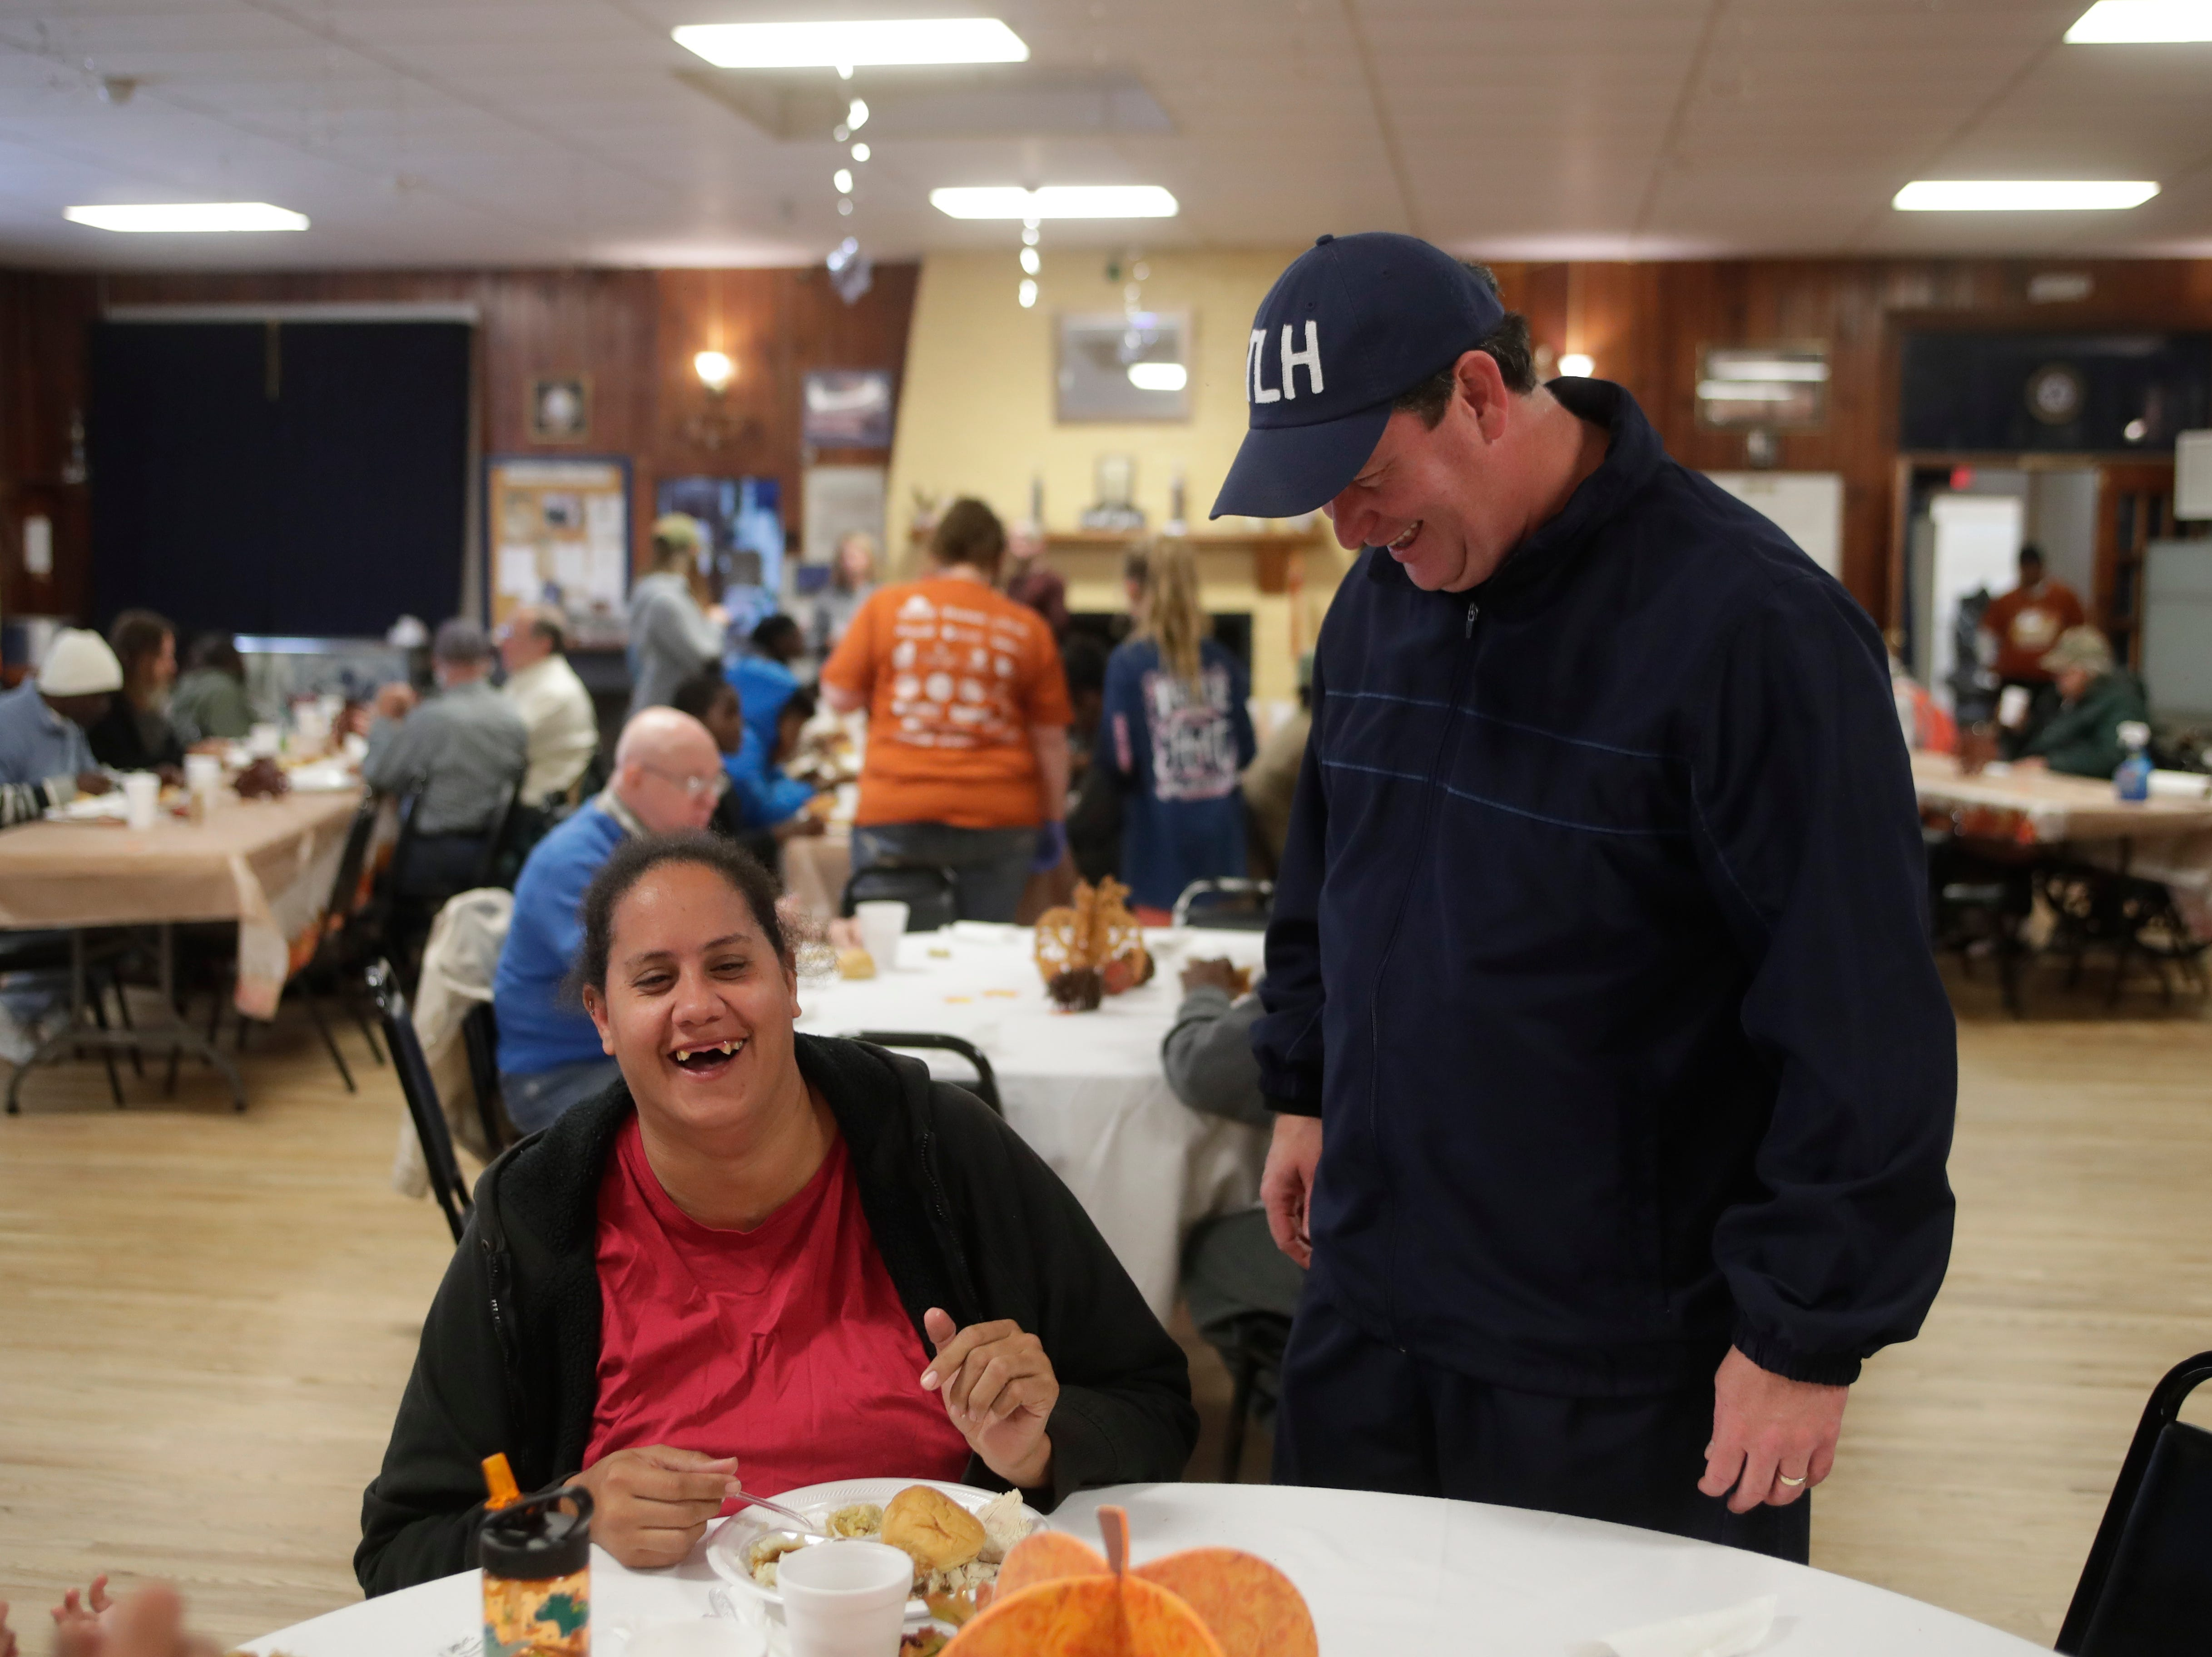 Mayor John Dailey wishes Michele Carmon a happy birthday as she enjoys her Thanksgiving meal during the Annual Community Thanksgiving Celebration at the American Legion Post 13 on Lake Ella Drive in Tallahassee, Fla. Thursday, Nov. 22, 2018.